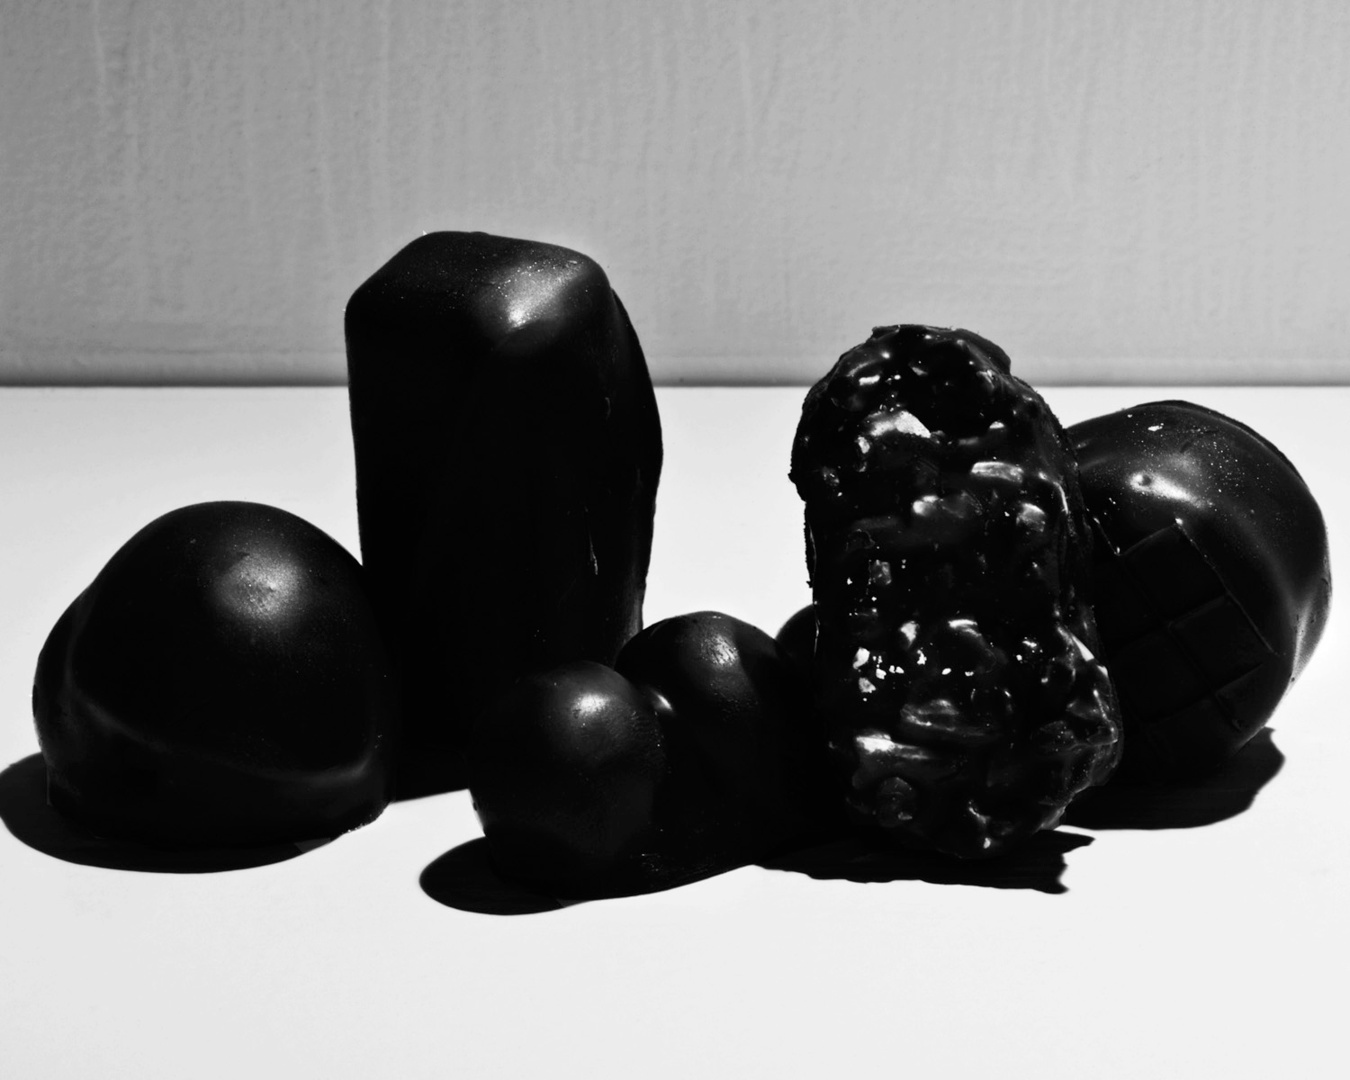 Dark Chocolate. New York, 2009 (Study #7)